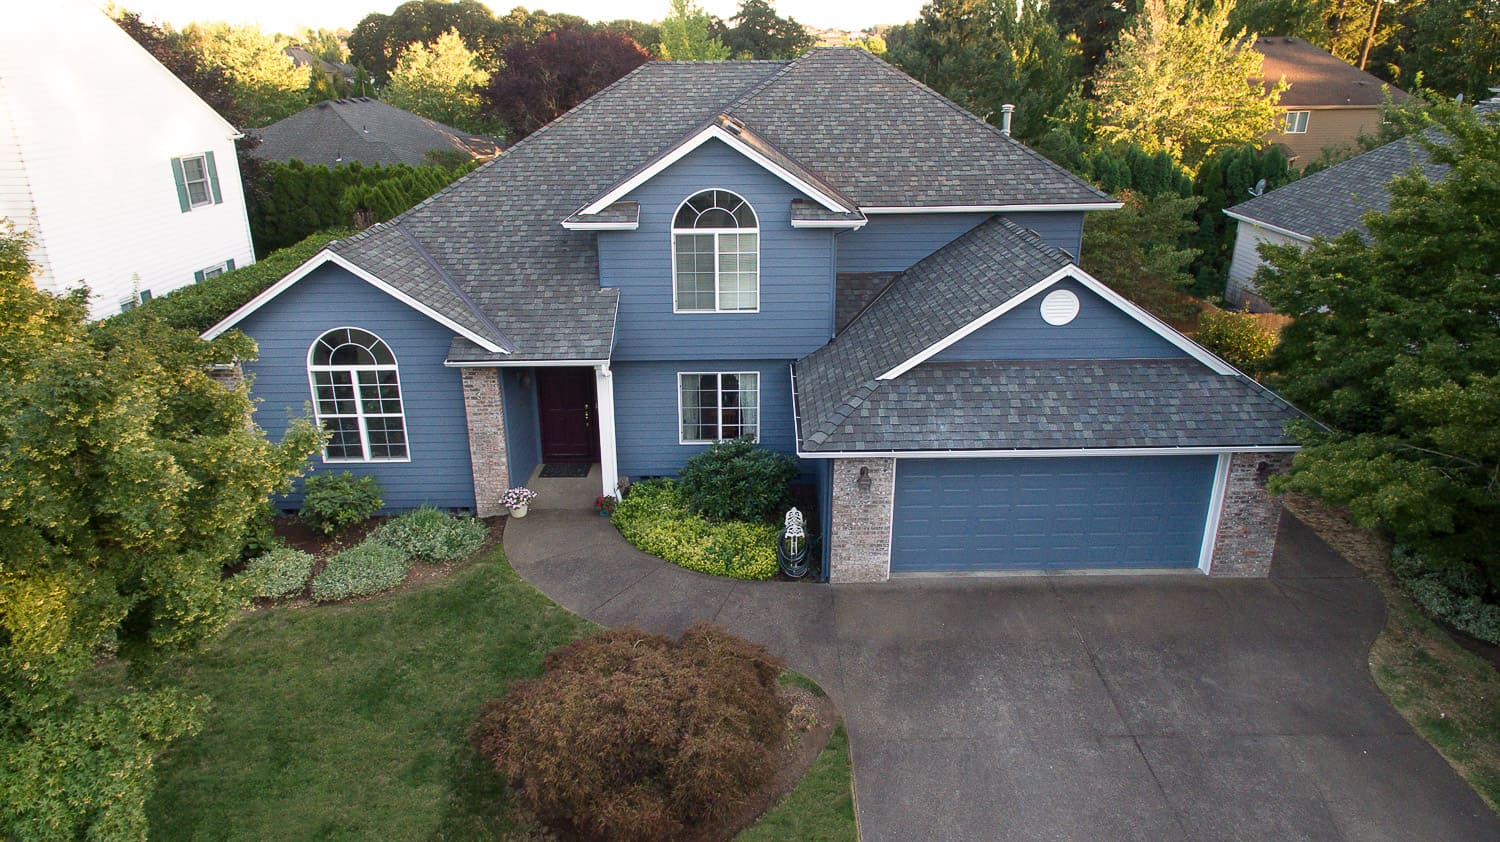 Roofing Oregon Amp Steamed Cedar Shingles